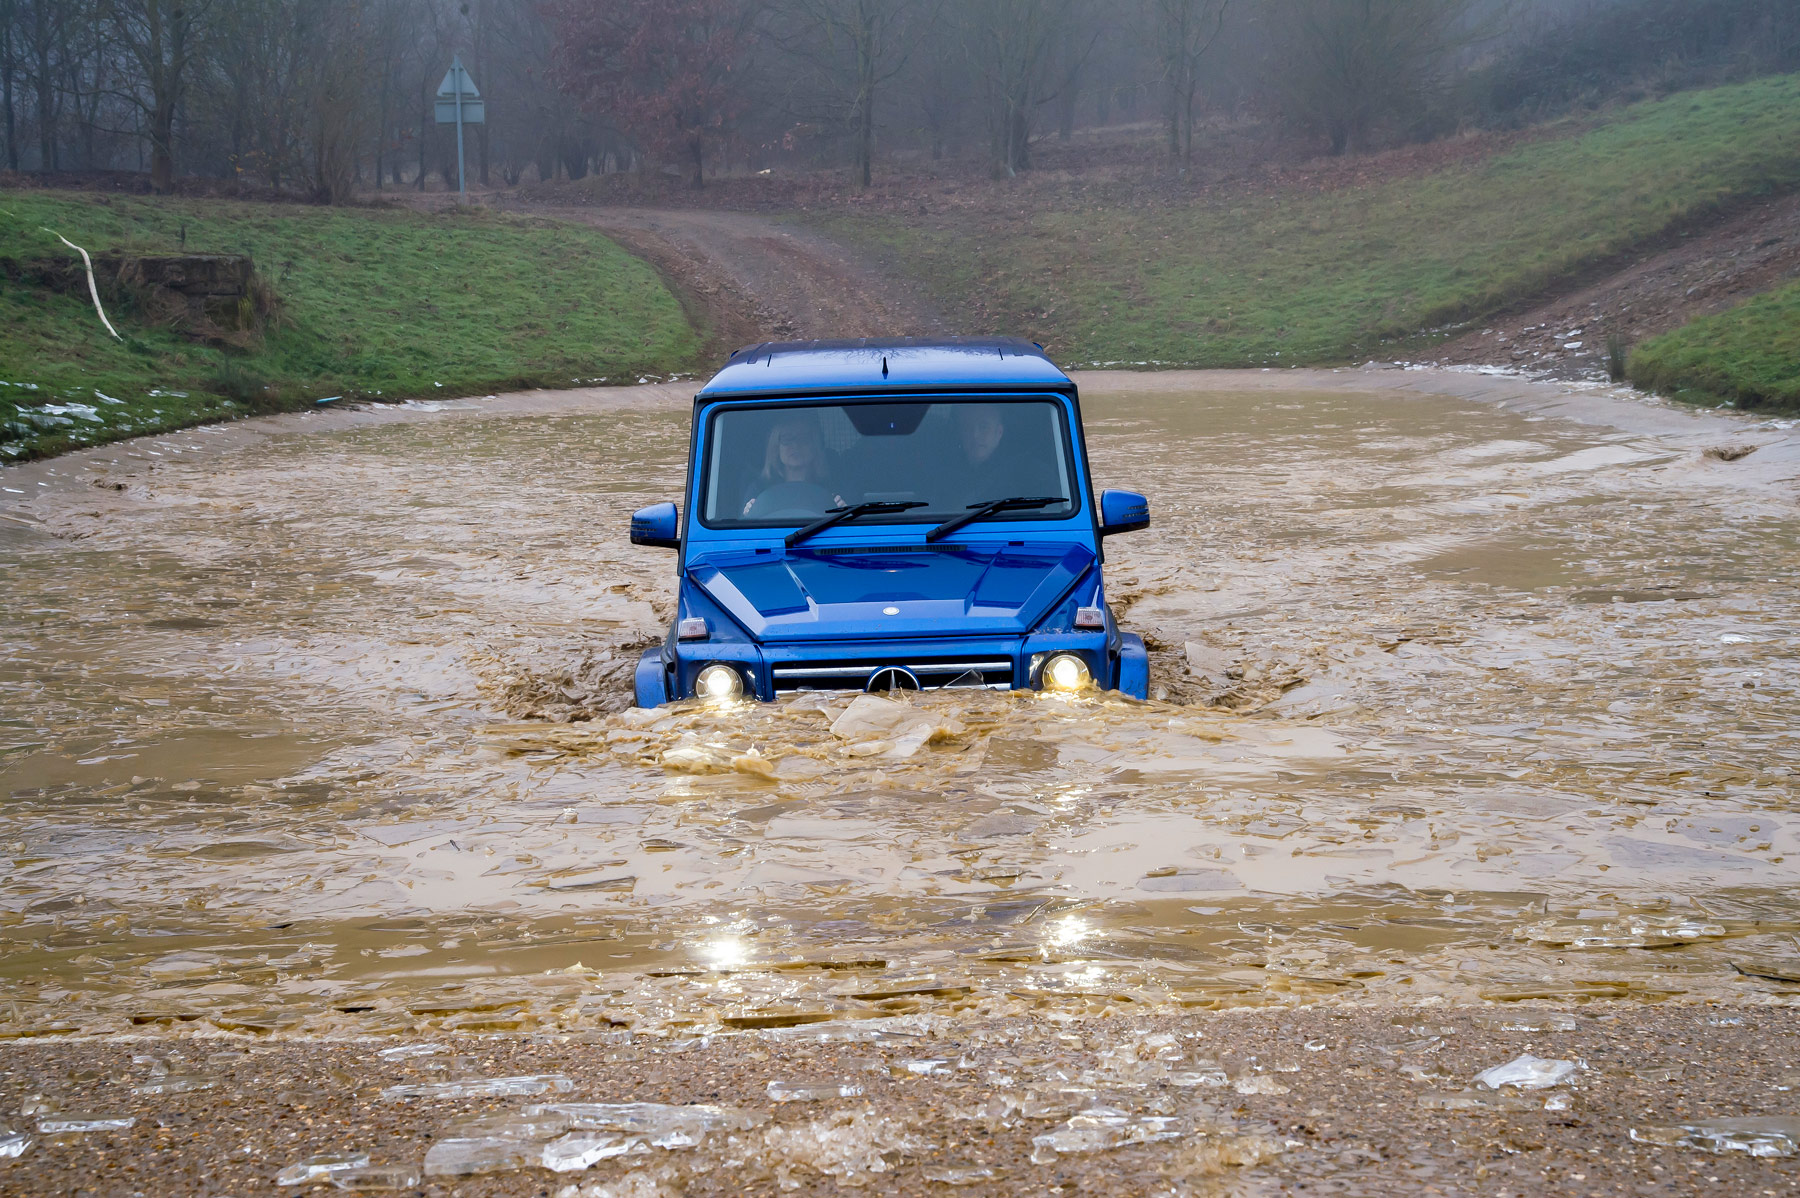 Mercedes-Benz SUV G Class Off-Road Test At Millbrook Proving Ground 2